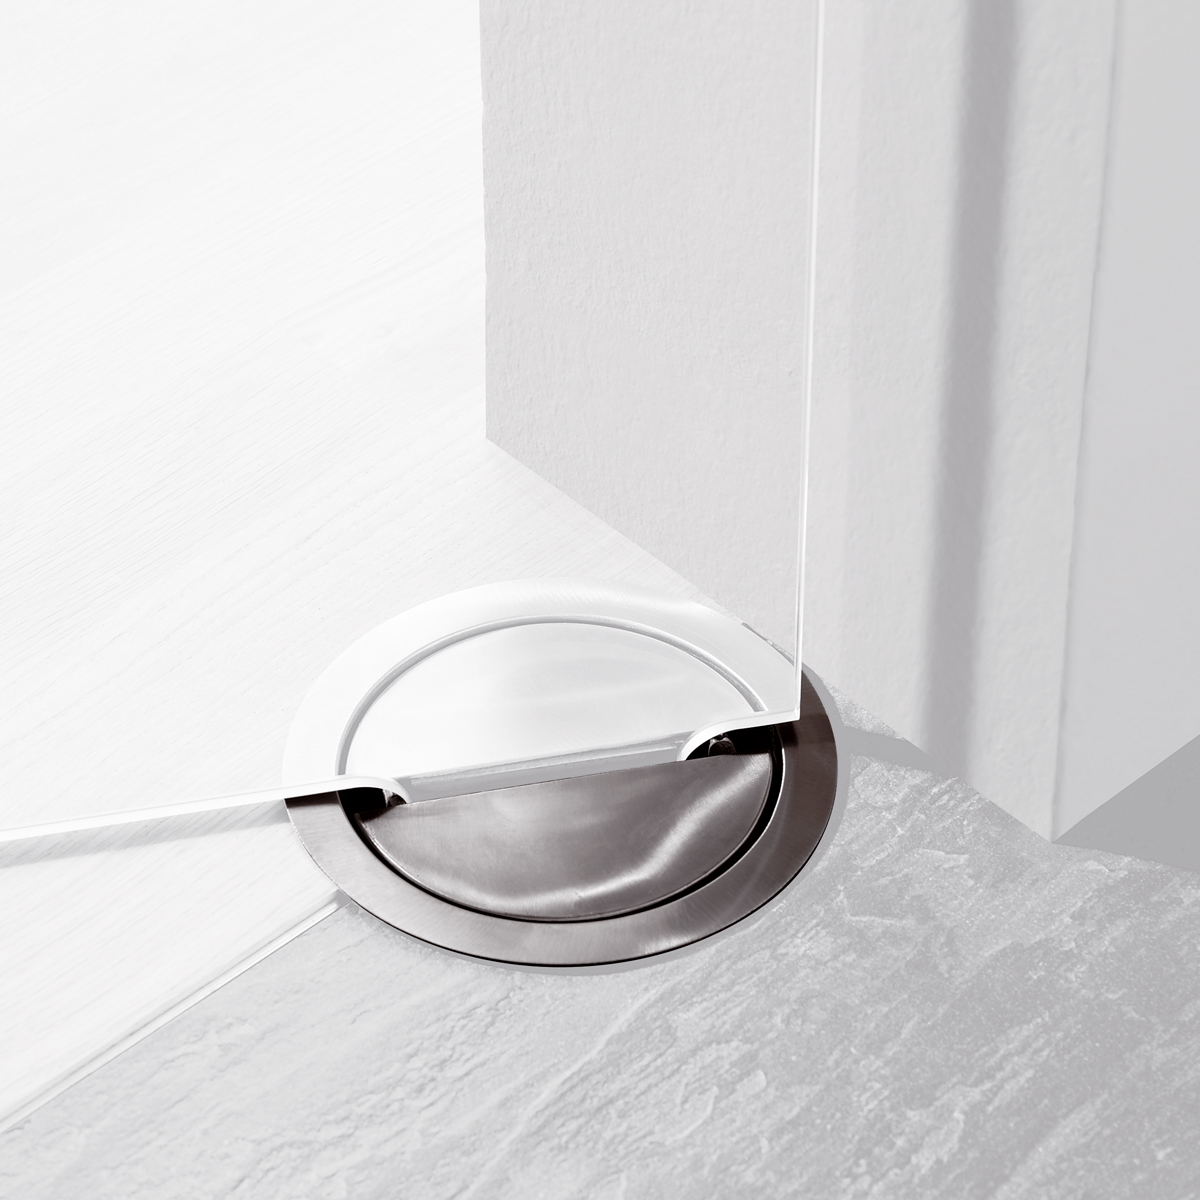 Dorma Visur Concealed Hardware For Double Acting Doors